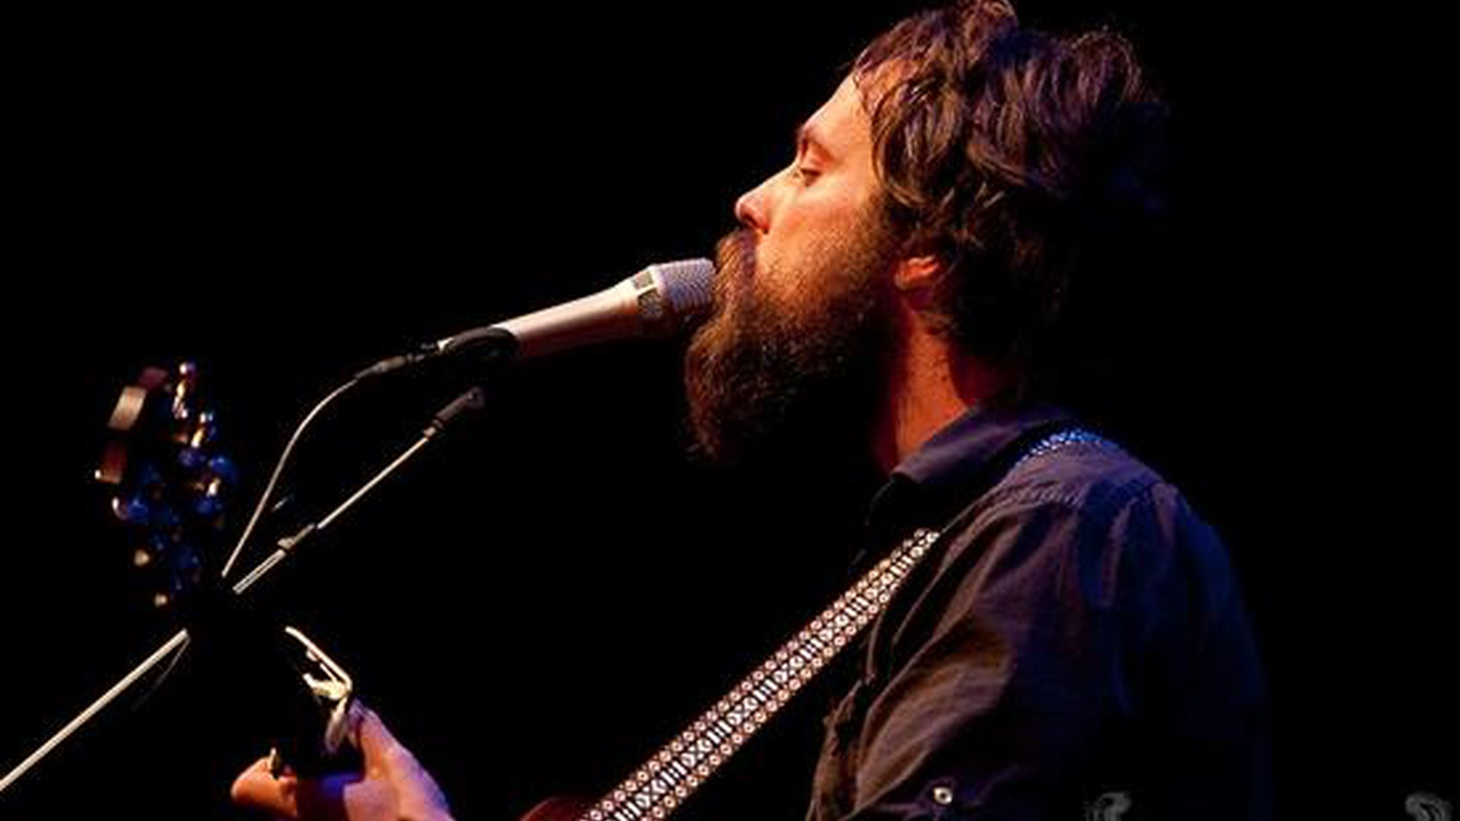 We've been eagerly anticipating new music from Iron & Wine the moniker of Sam Beam, who always offers gorgeous folk songs. He'll perform brand new songs that are sure to become favorites on Morning Becomes Eclectic at 11:15am.